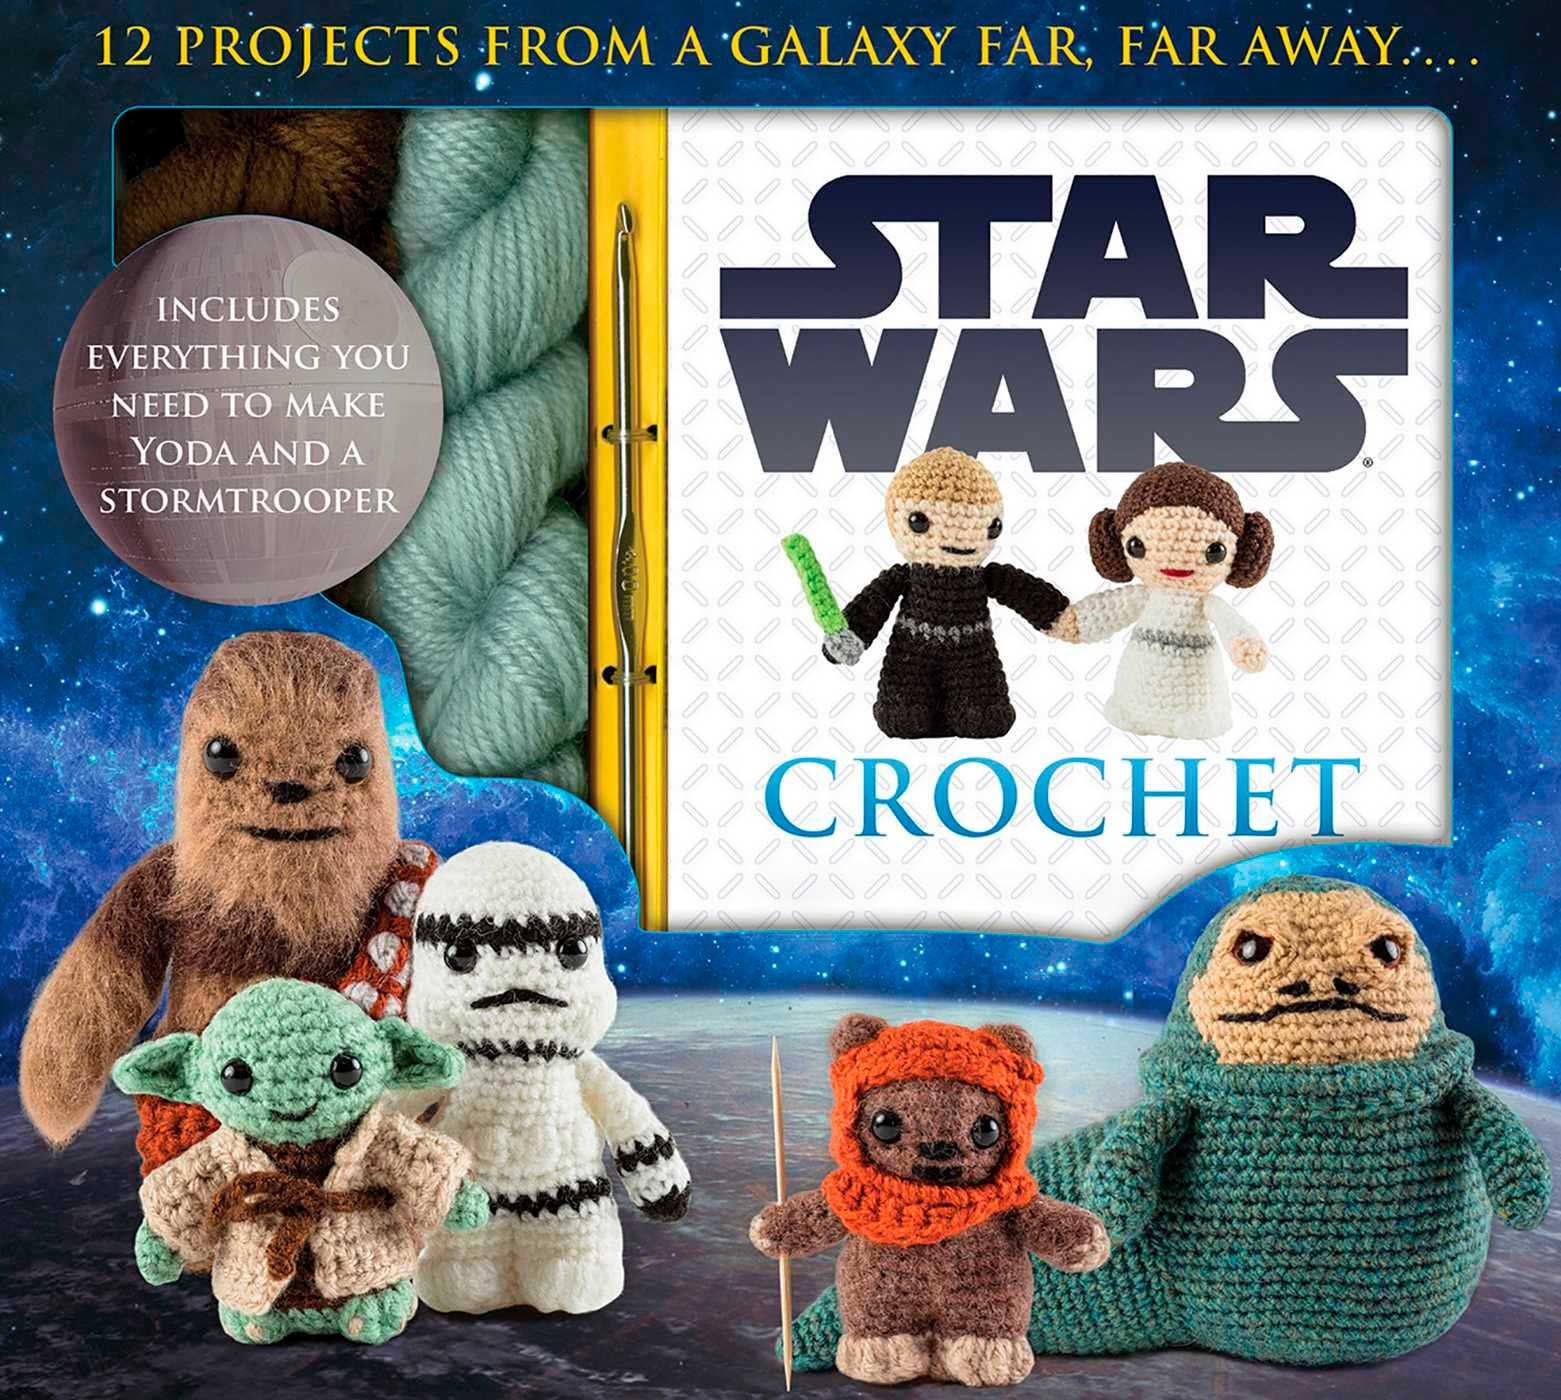 Kit Passo a Passo de Crochê Amigurumi do Star Wars